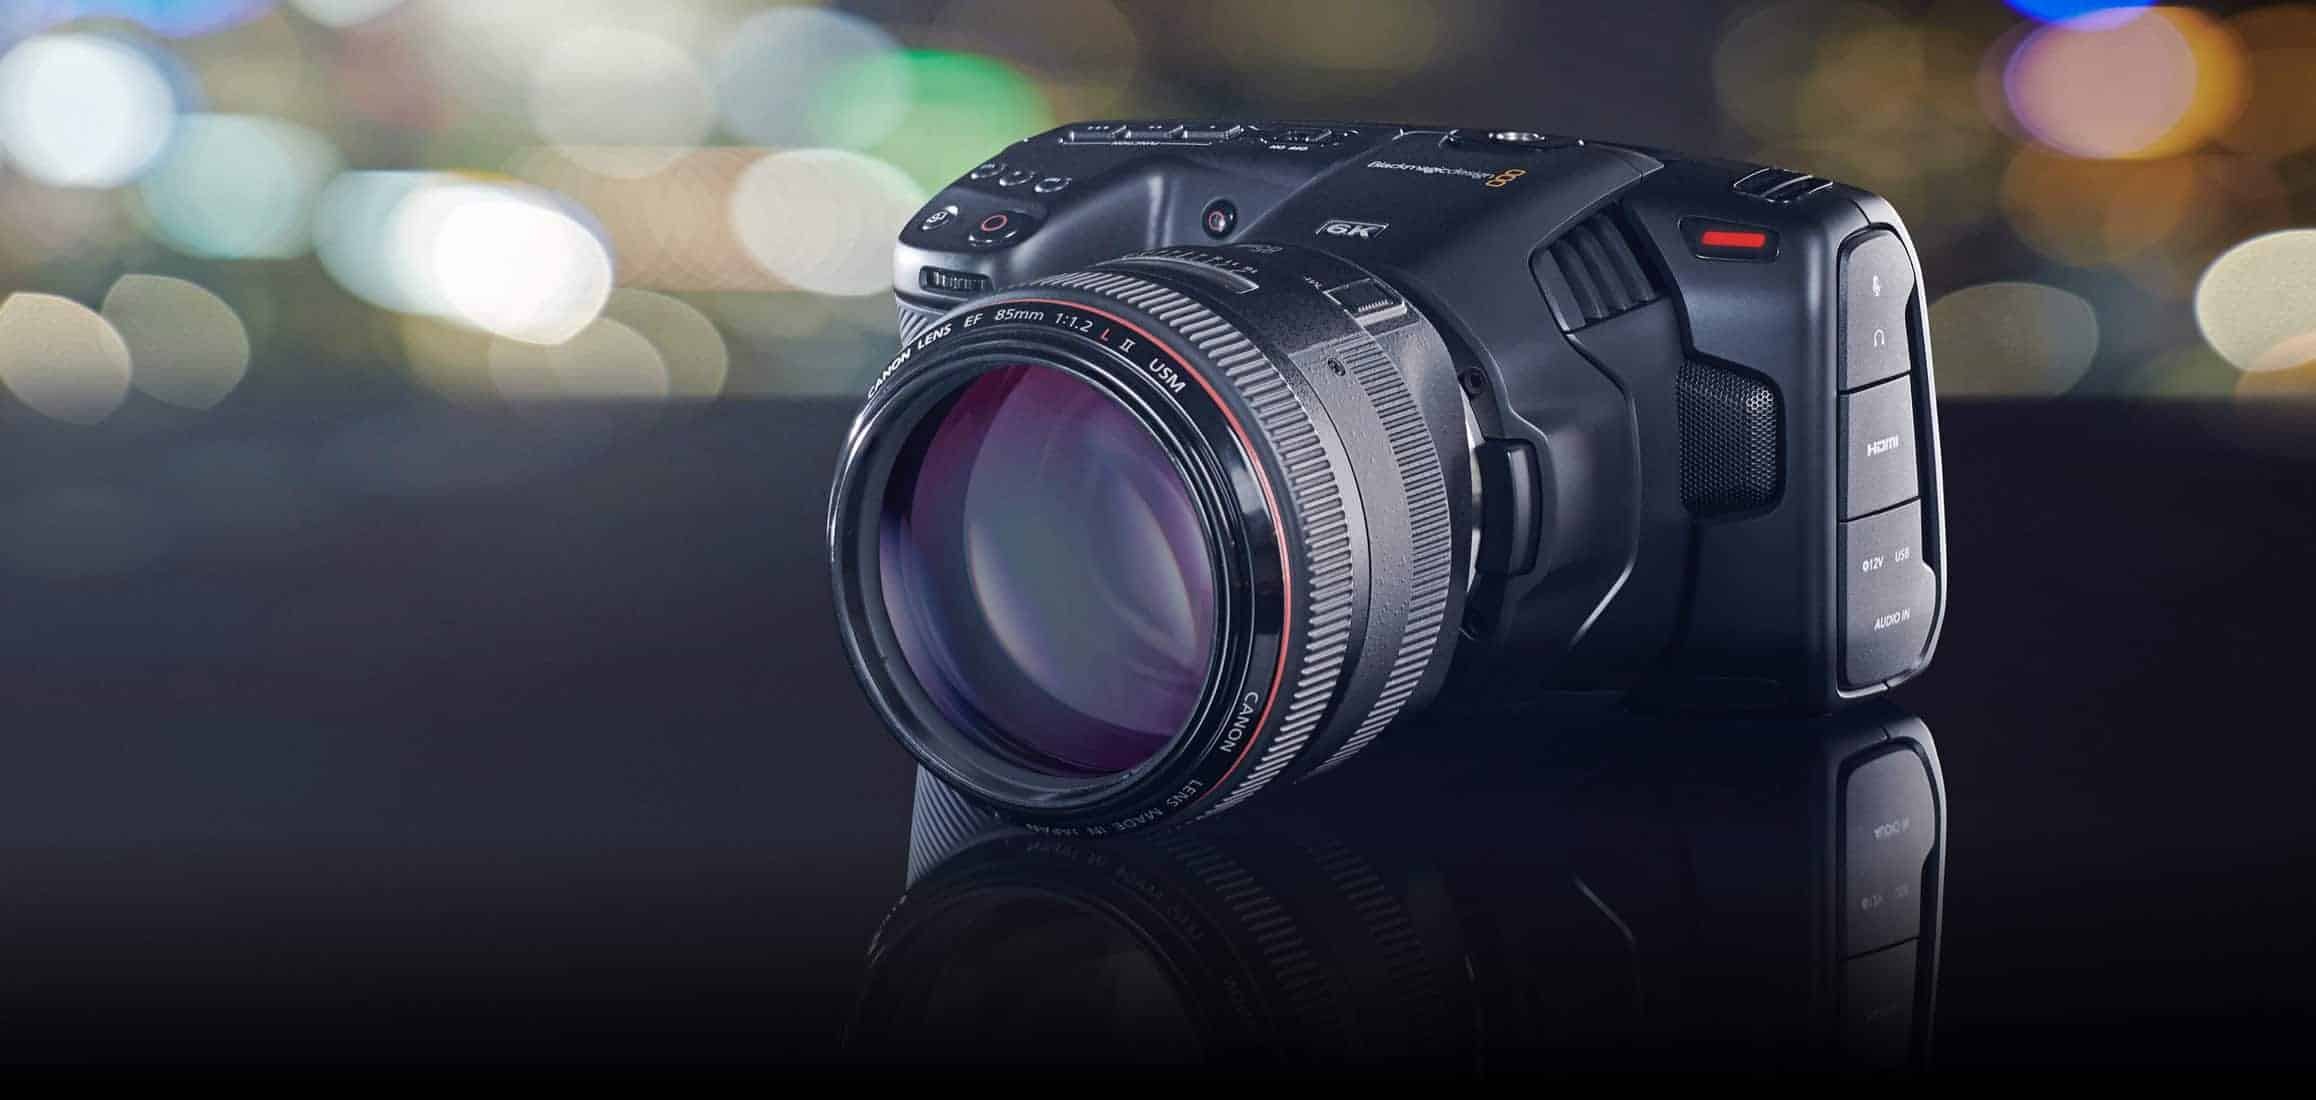 Camera News: Blackmagic Design adds 6K EF mount version of the